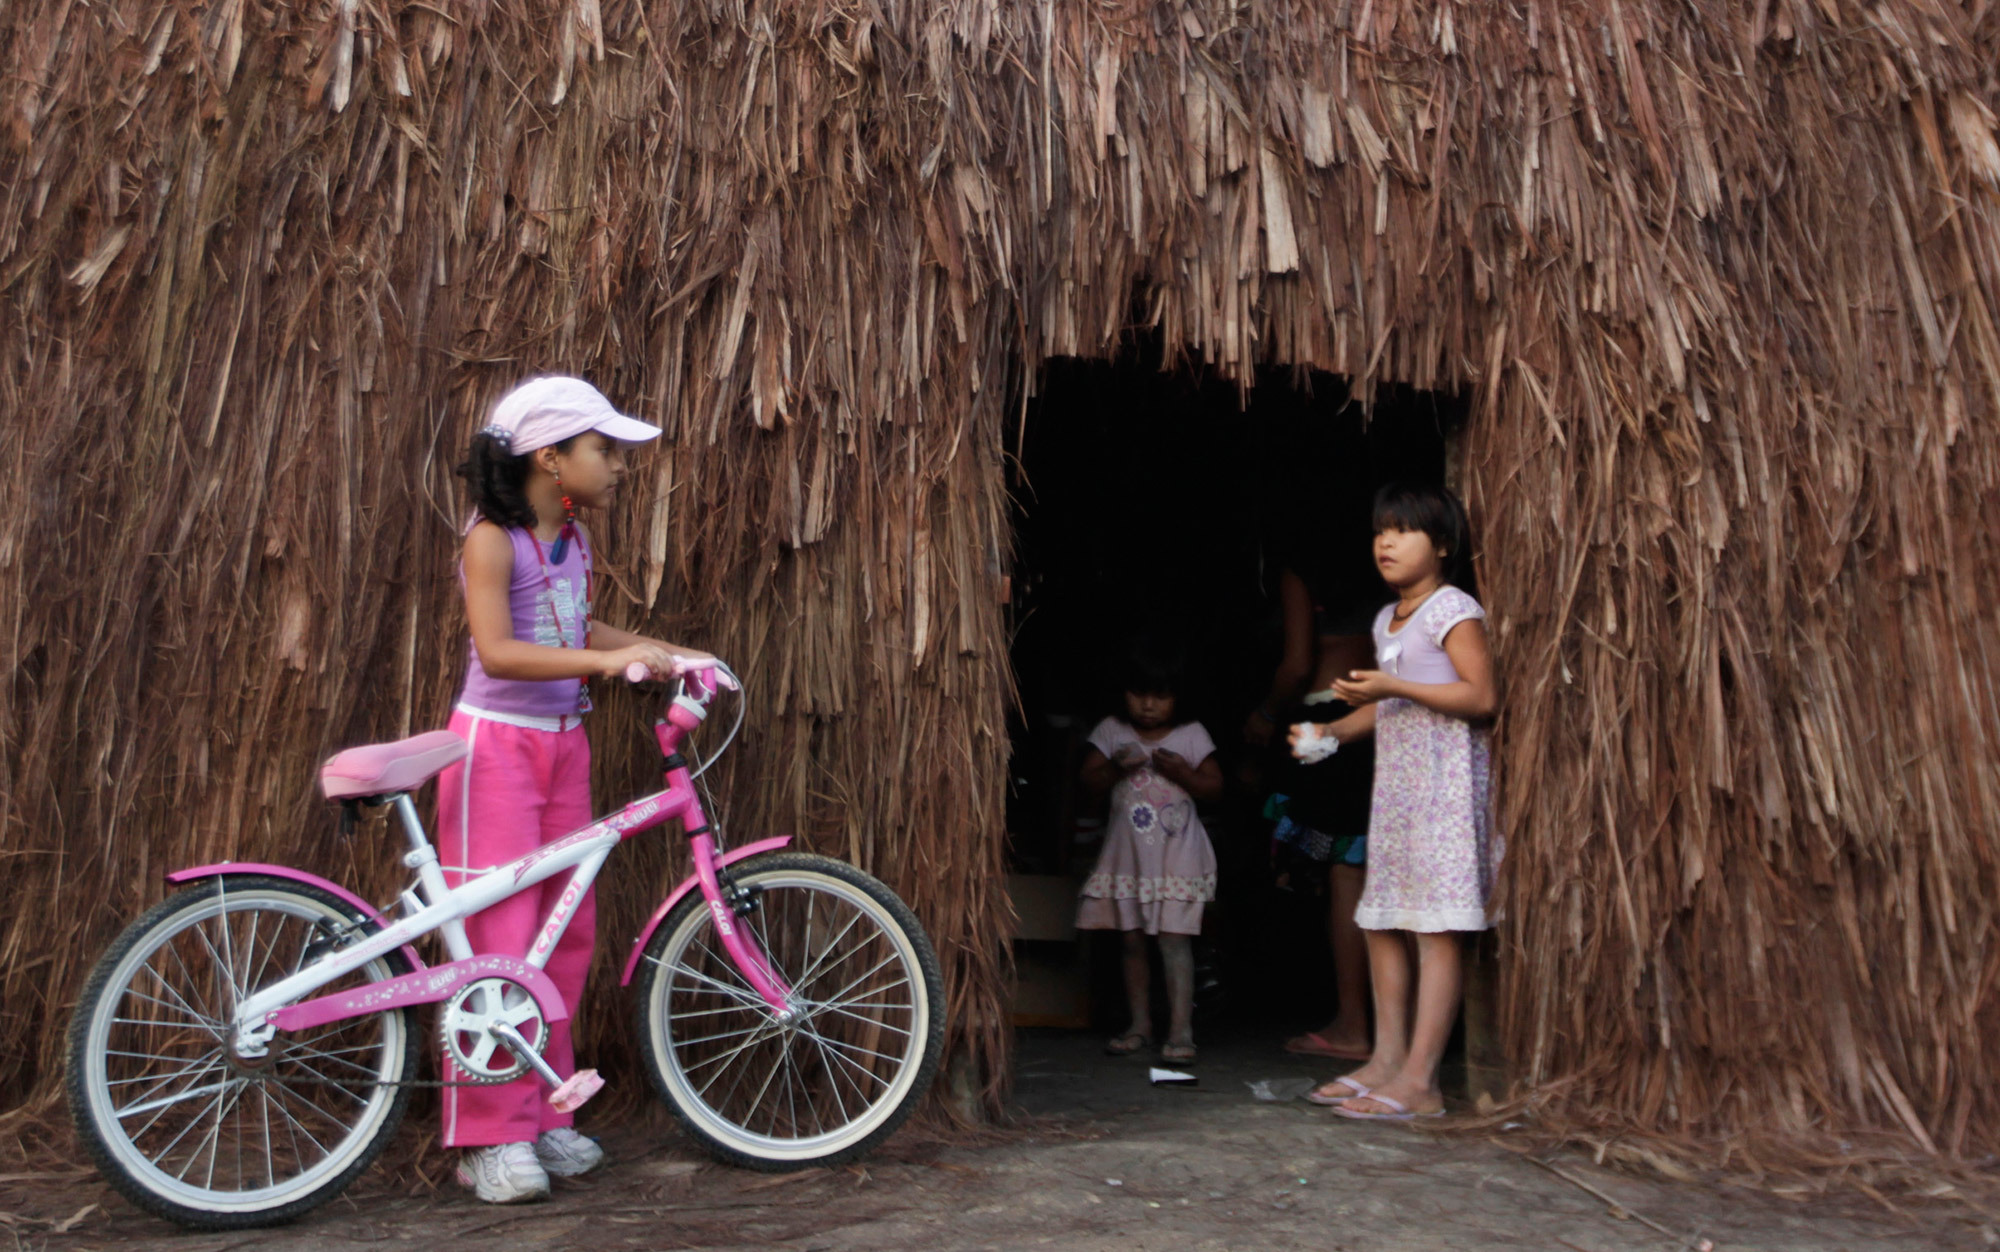 Resultado de imagem para Beatriz (L), 7, from Rio de Janeiro speaks with an indigenous girl at the Kari-Oca village as part of the 'Rio+20' United Nations Conference on Sustainable Development. Photo by Ricardo Moraes/Reuters